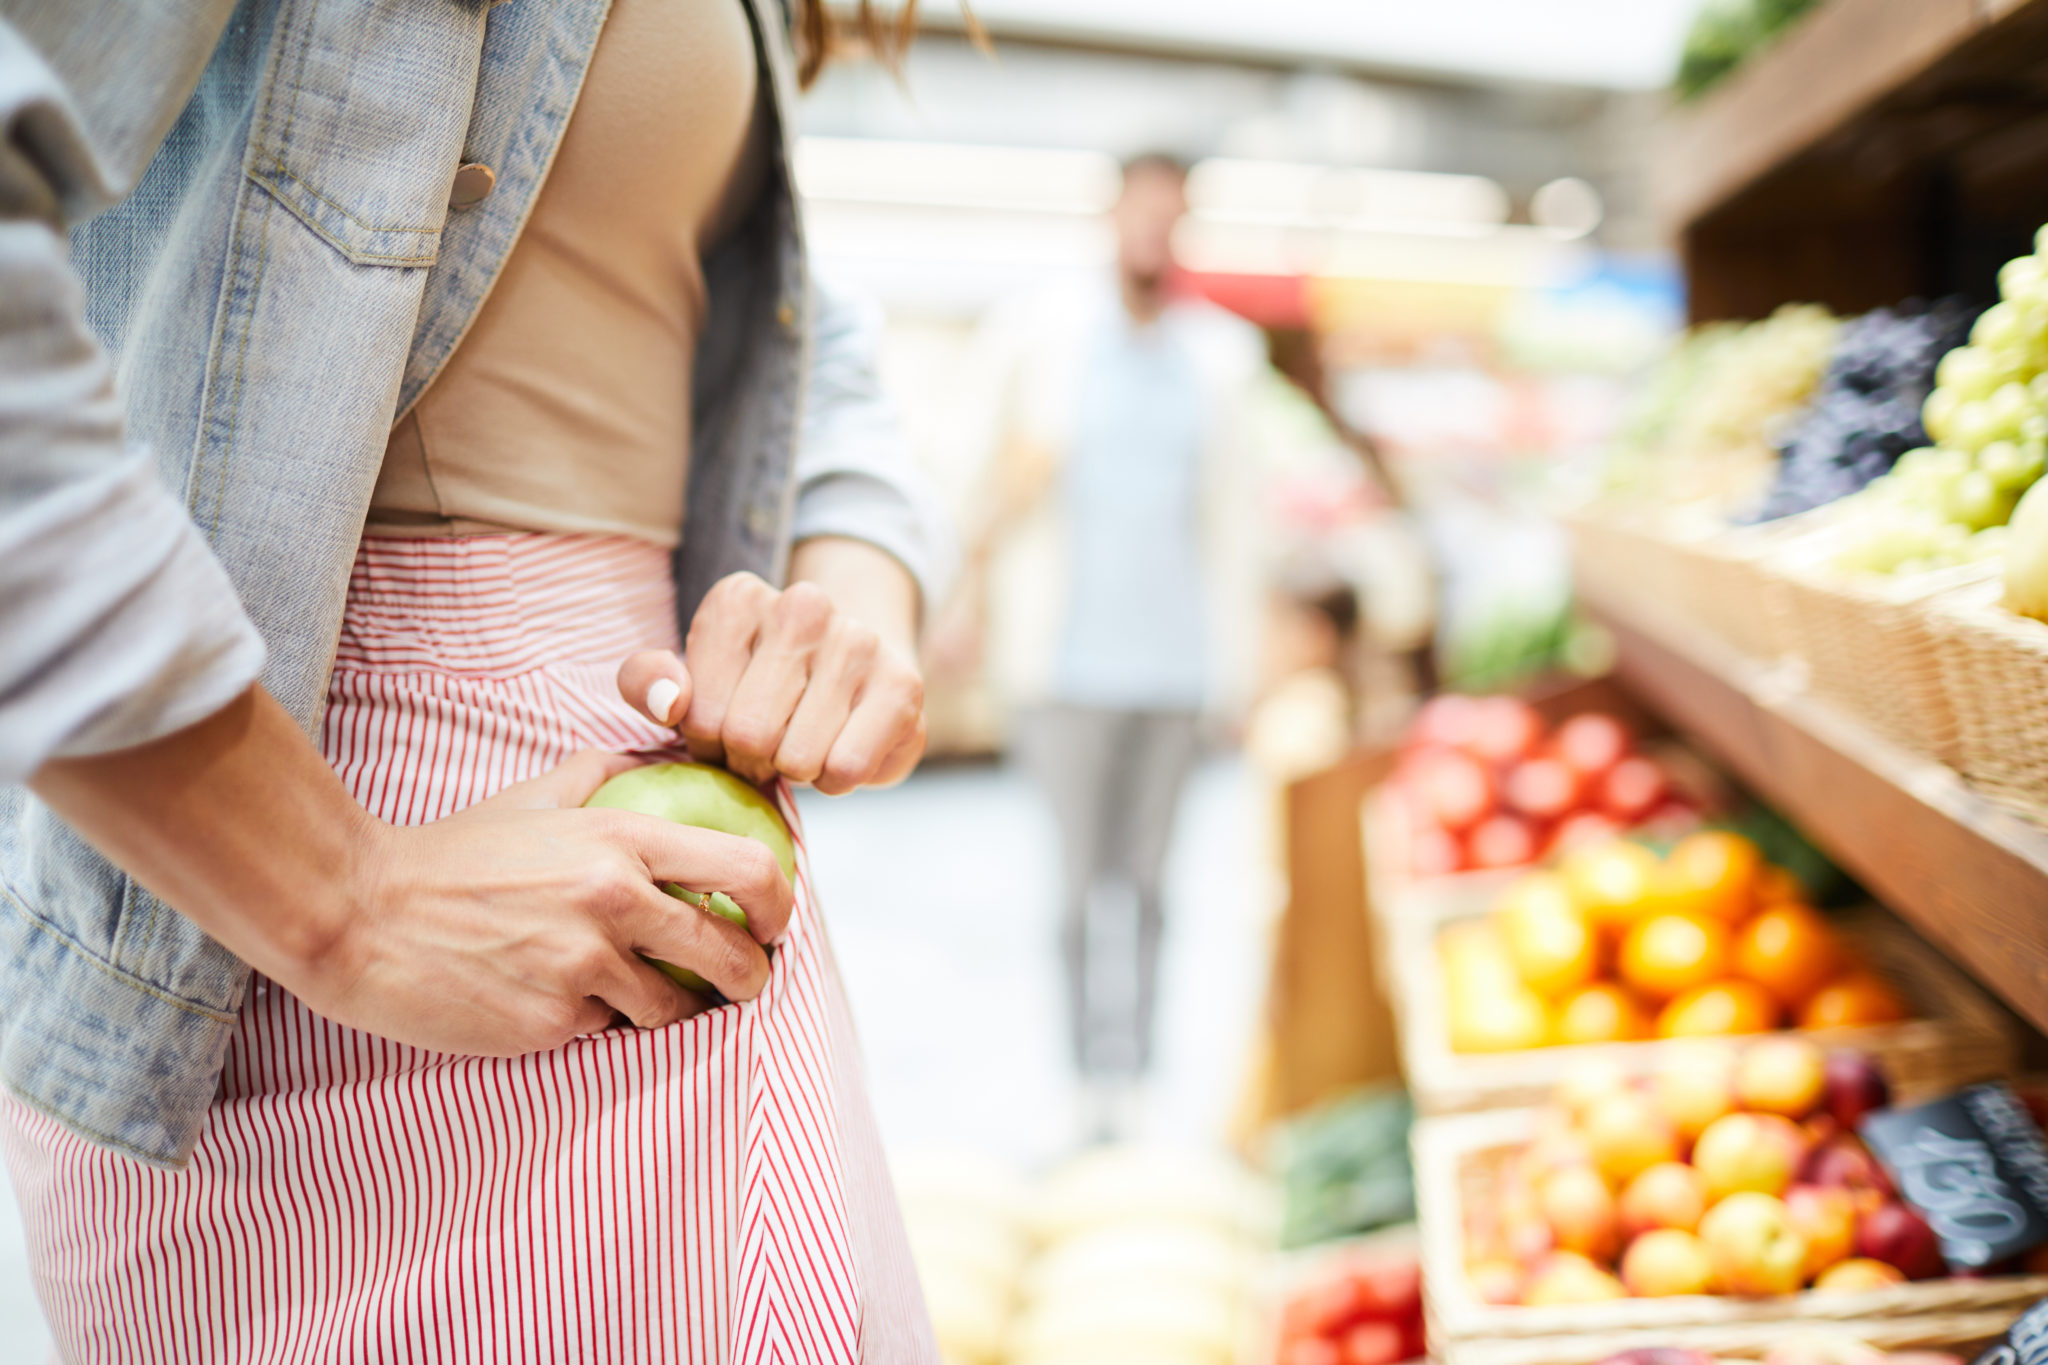 The Long-Term Impacts of Shoplifting